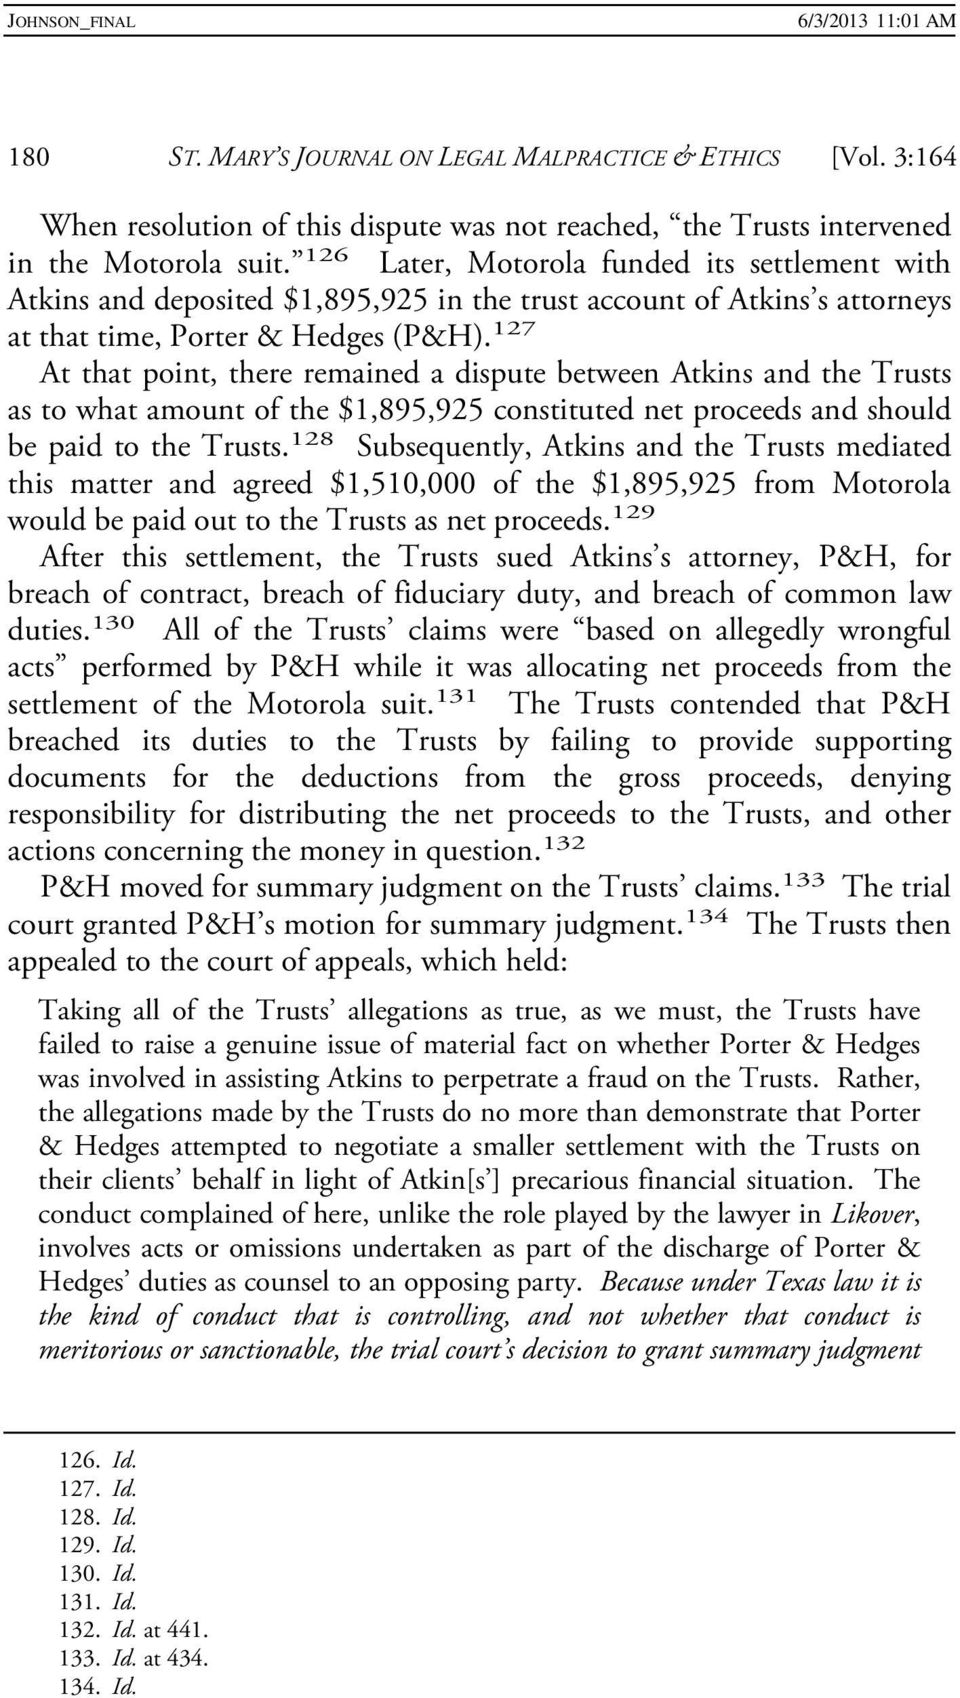 127 At that point, there remained a dispute between Atkins and the Trusts as to what amount of the $1,895,925 constituted net proceeds and should be paid to the Trusts.